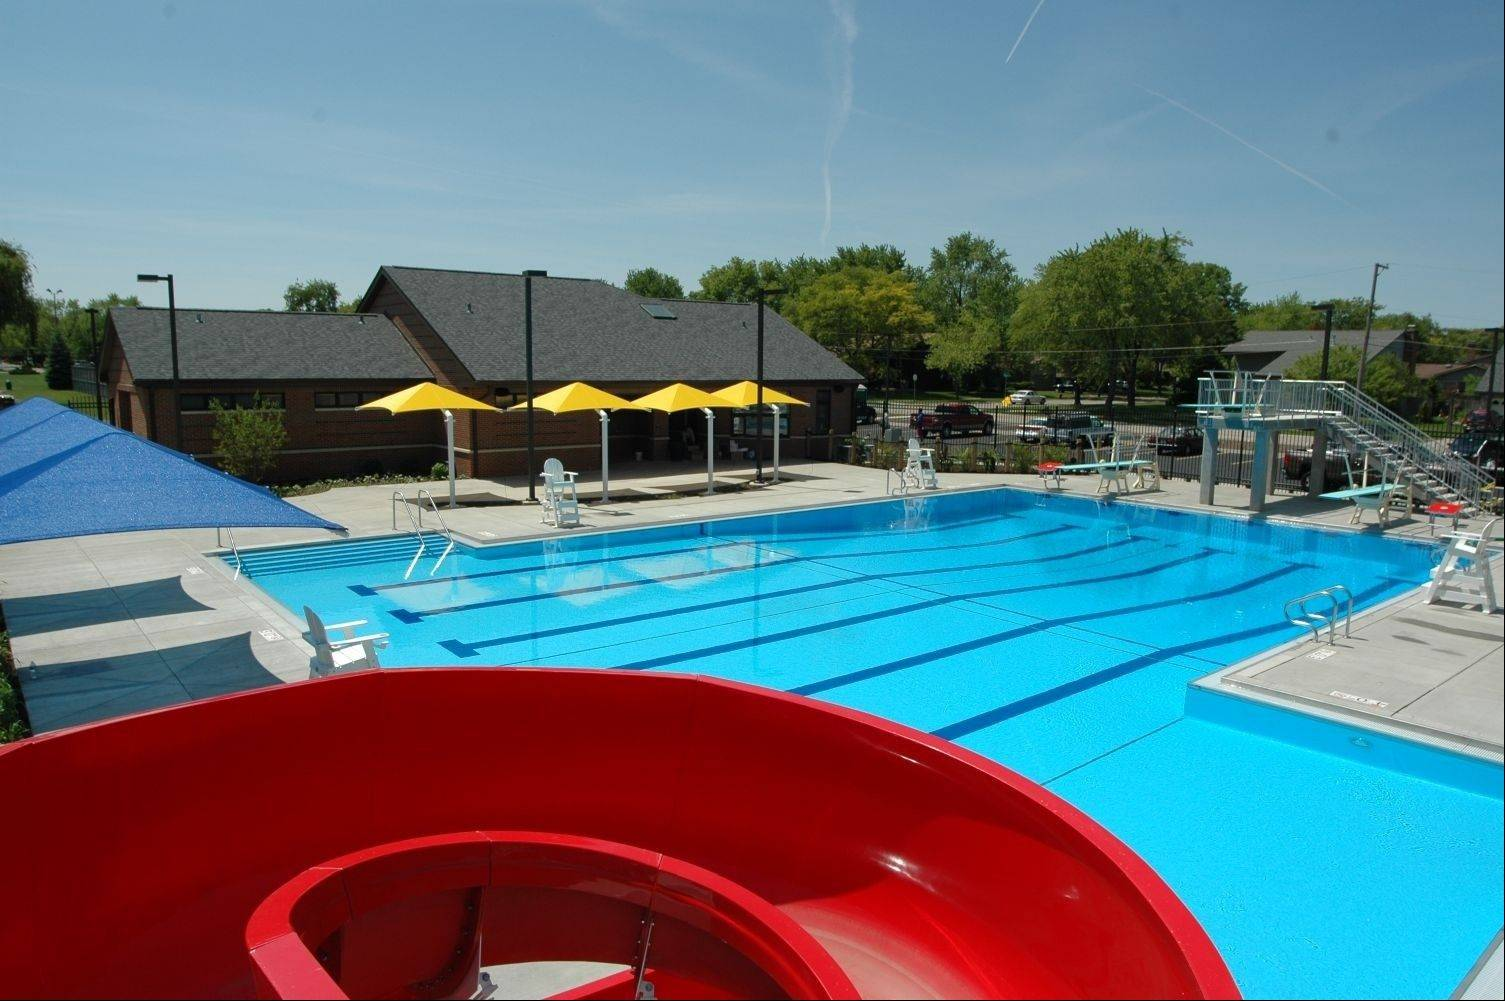 Eagle Pool, remodeled in 2012, offers an enlarged zero depth tot pool with alligator slide and bubbles. It is located at 1425 N. Oak St., in Palatine.